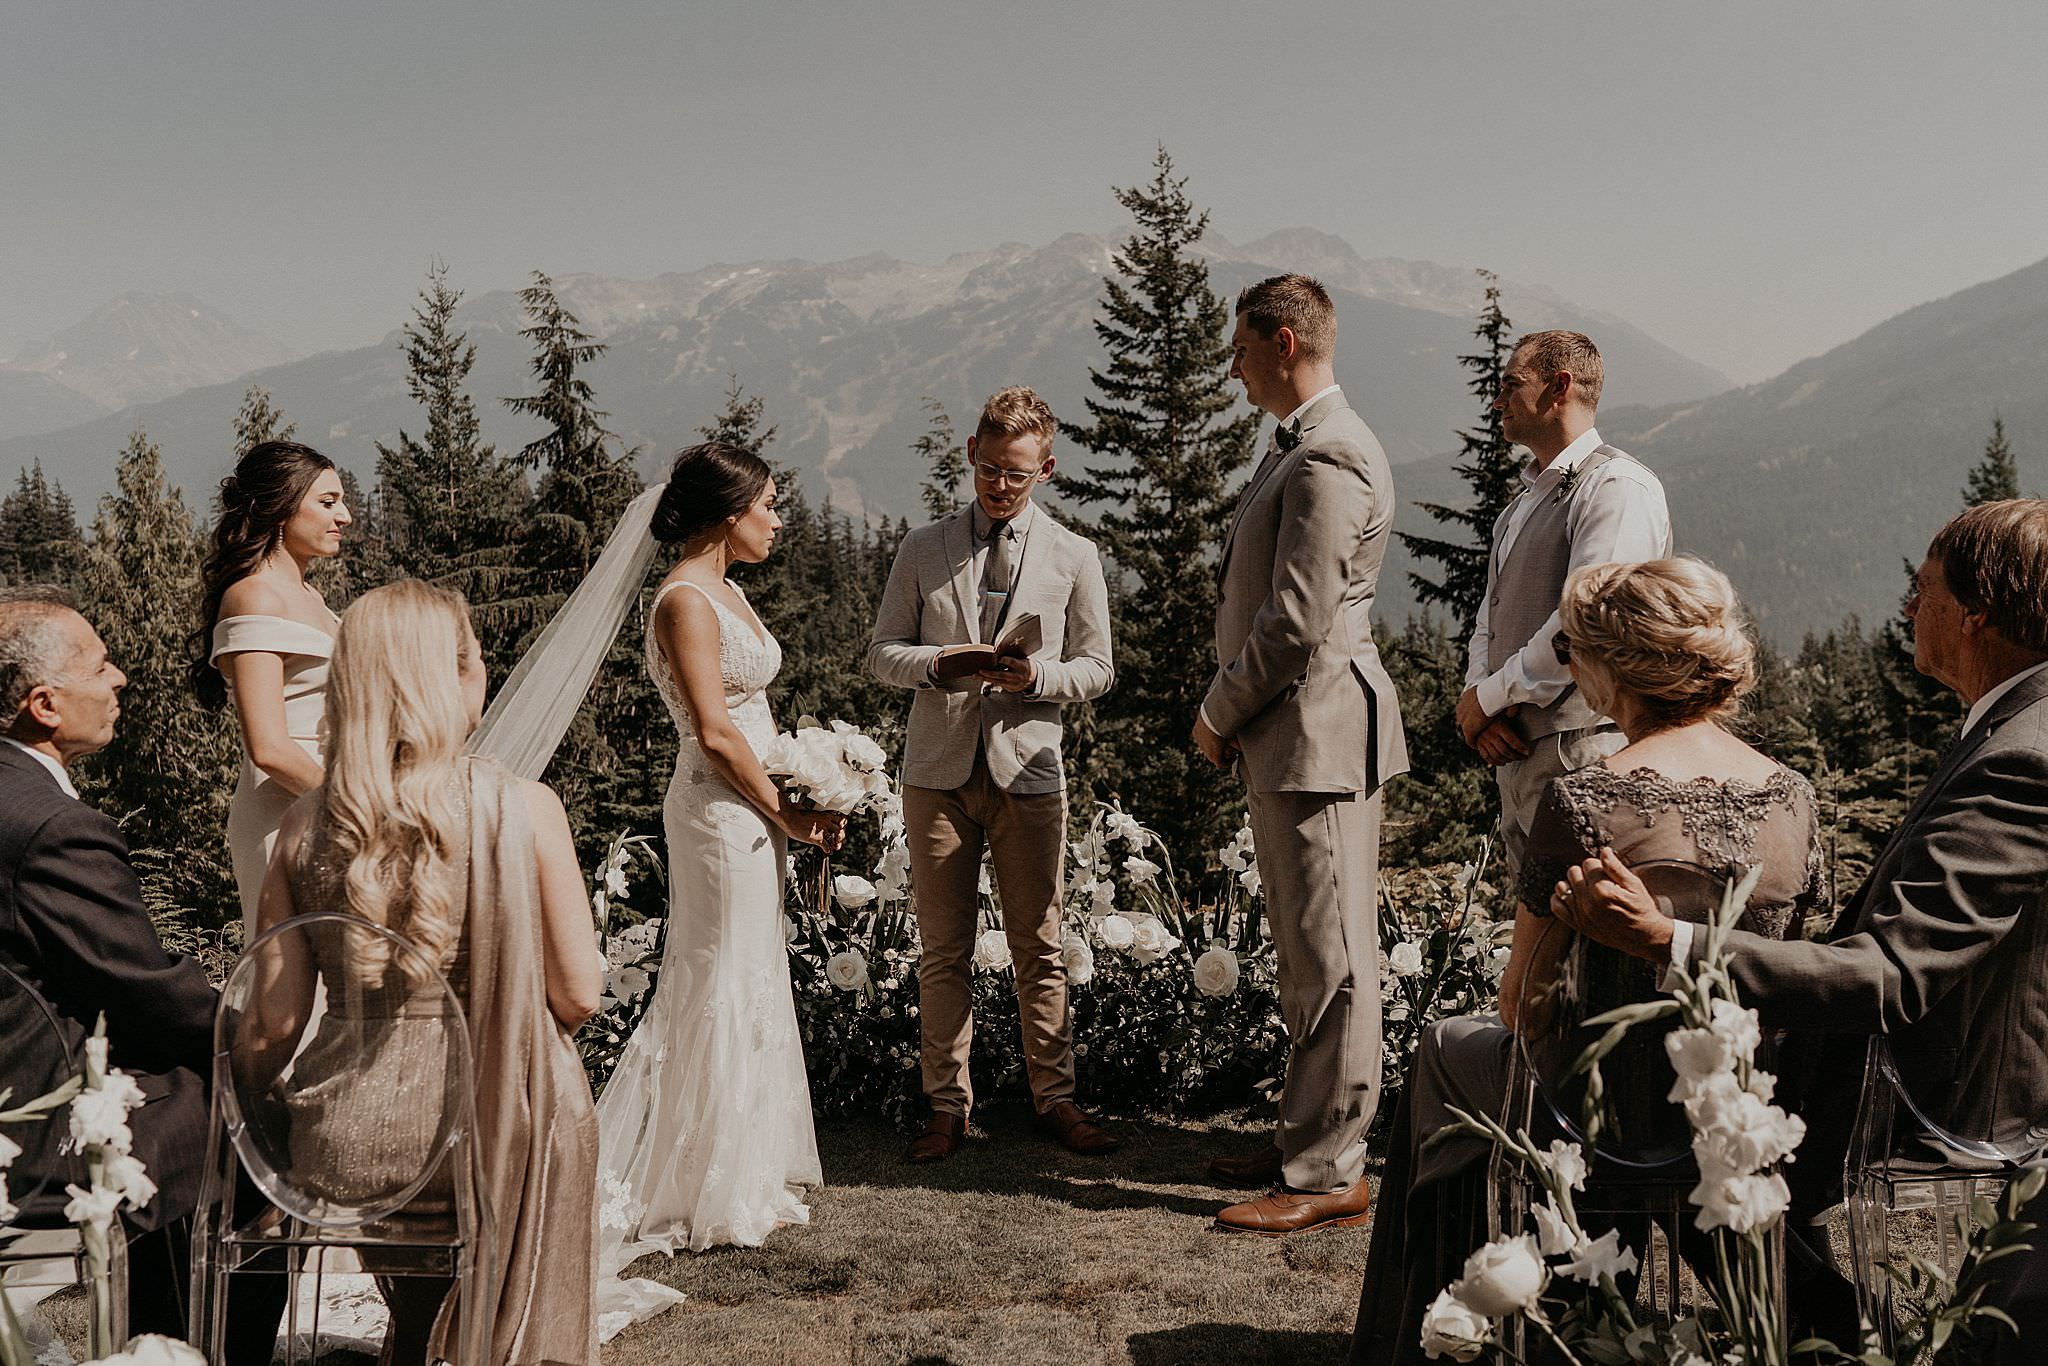 Epic destination wedding in whistler Canada with mountain views